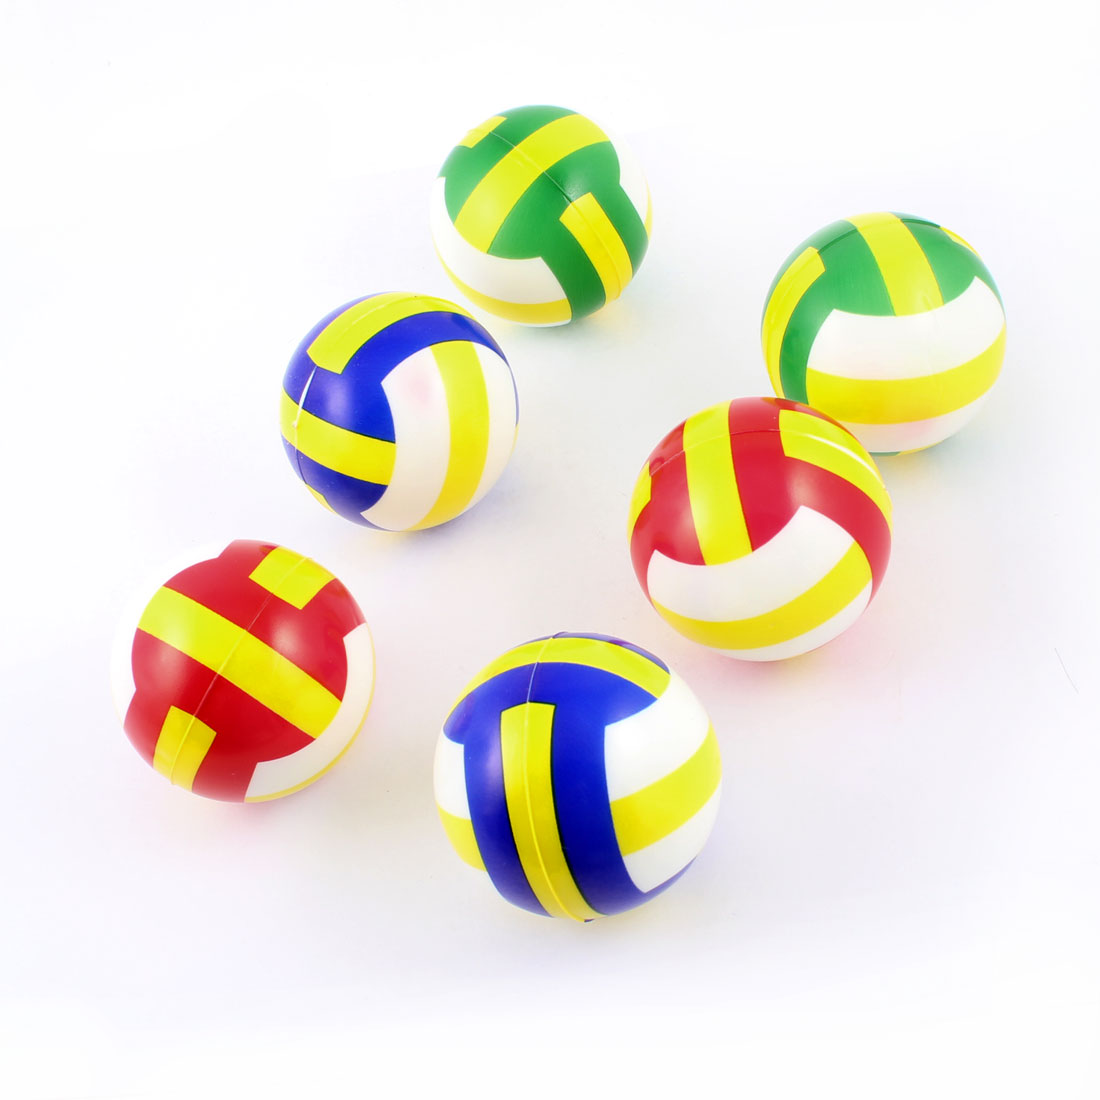 6 Pcs Assorted Colors Squeeze Plastic Stress Volleyball Toy for Children